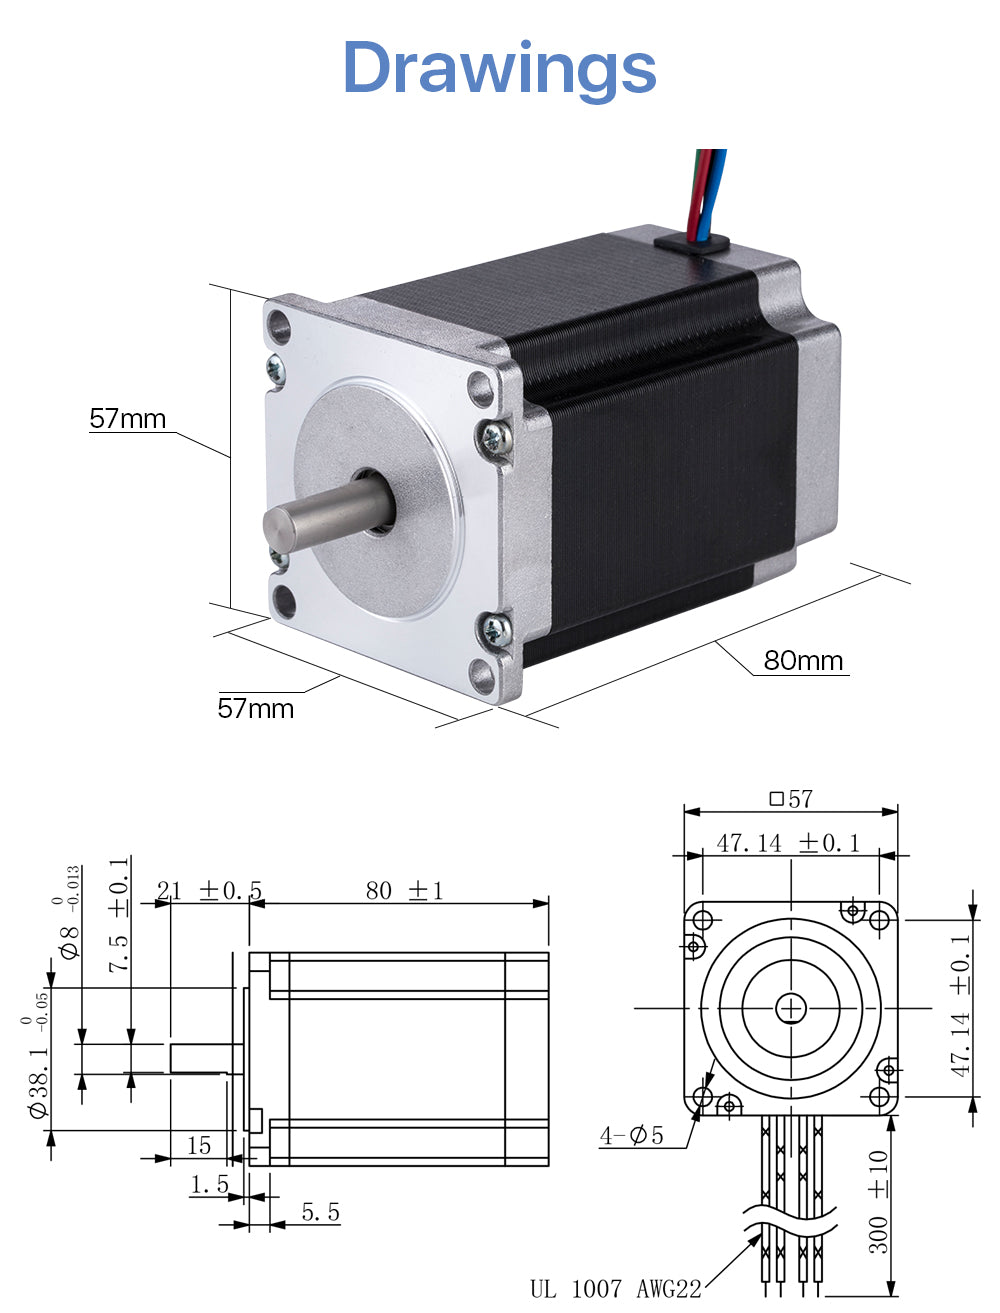 nema 23 stepper motor 3D printer stepper motor